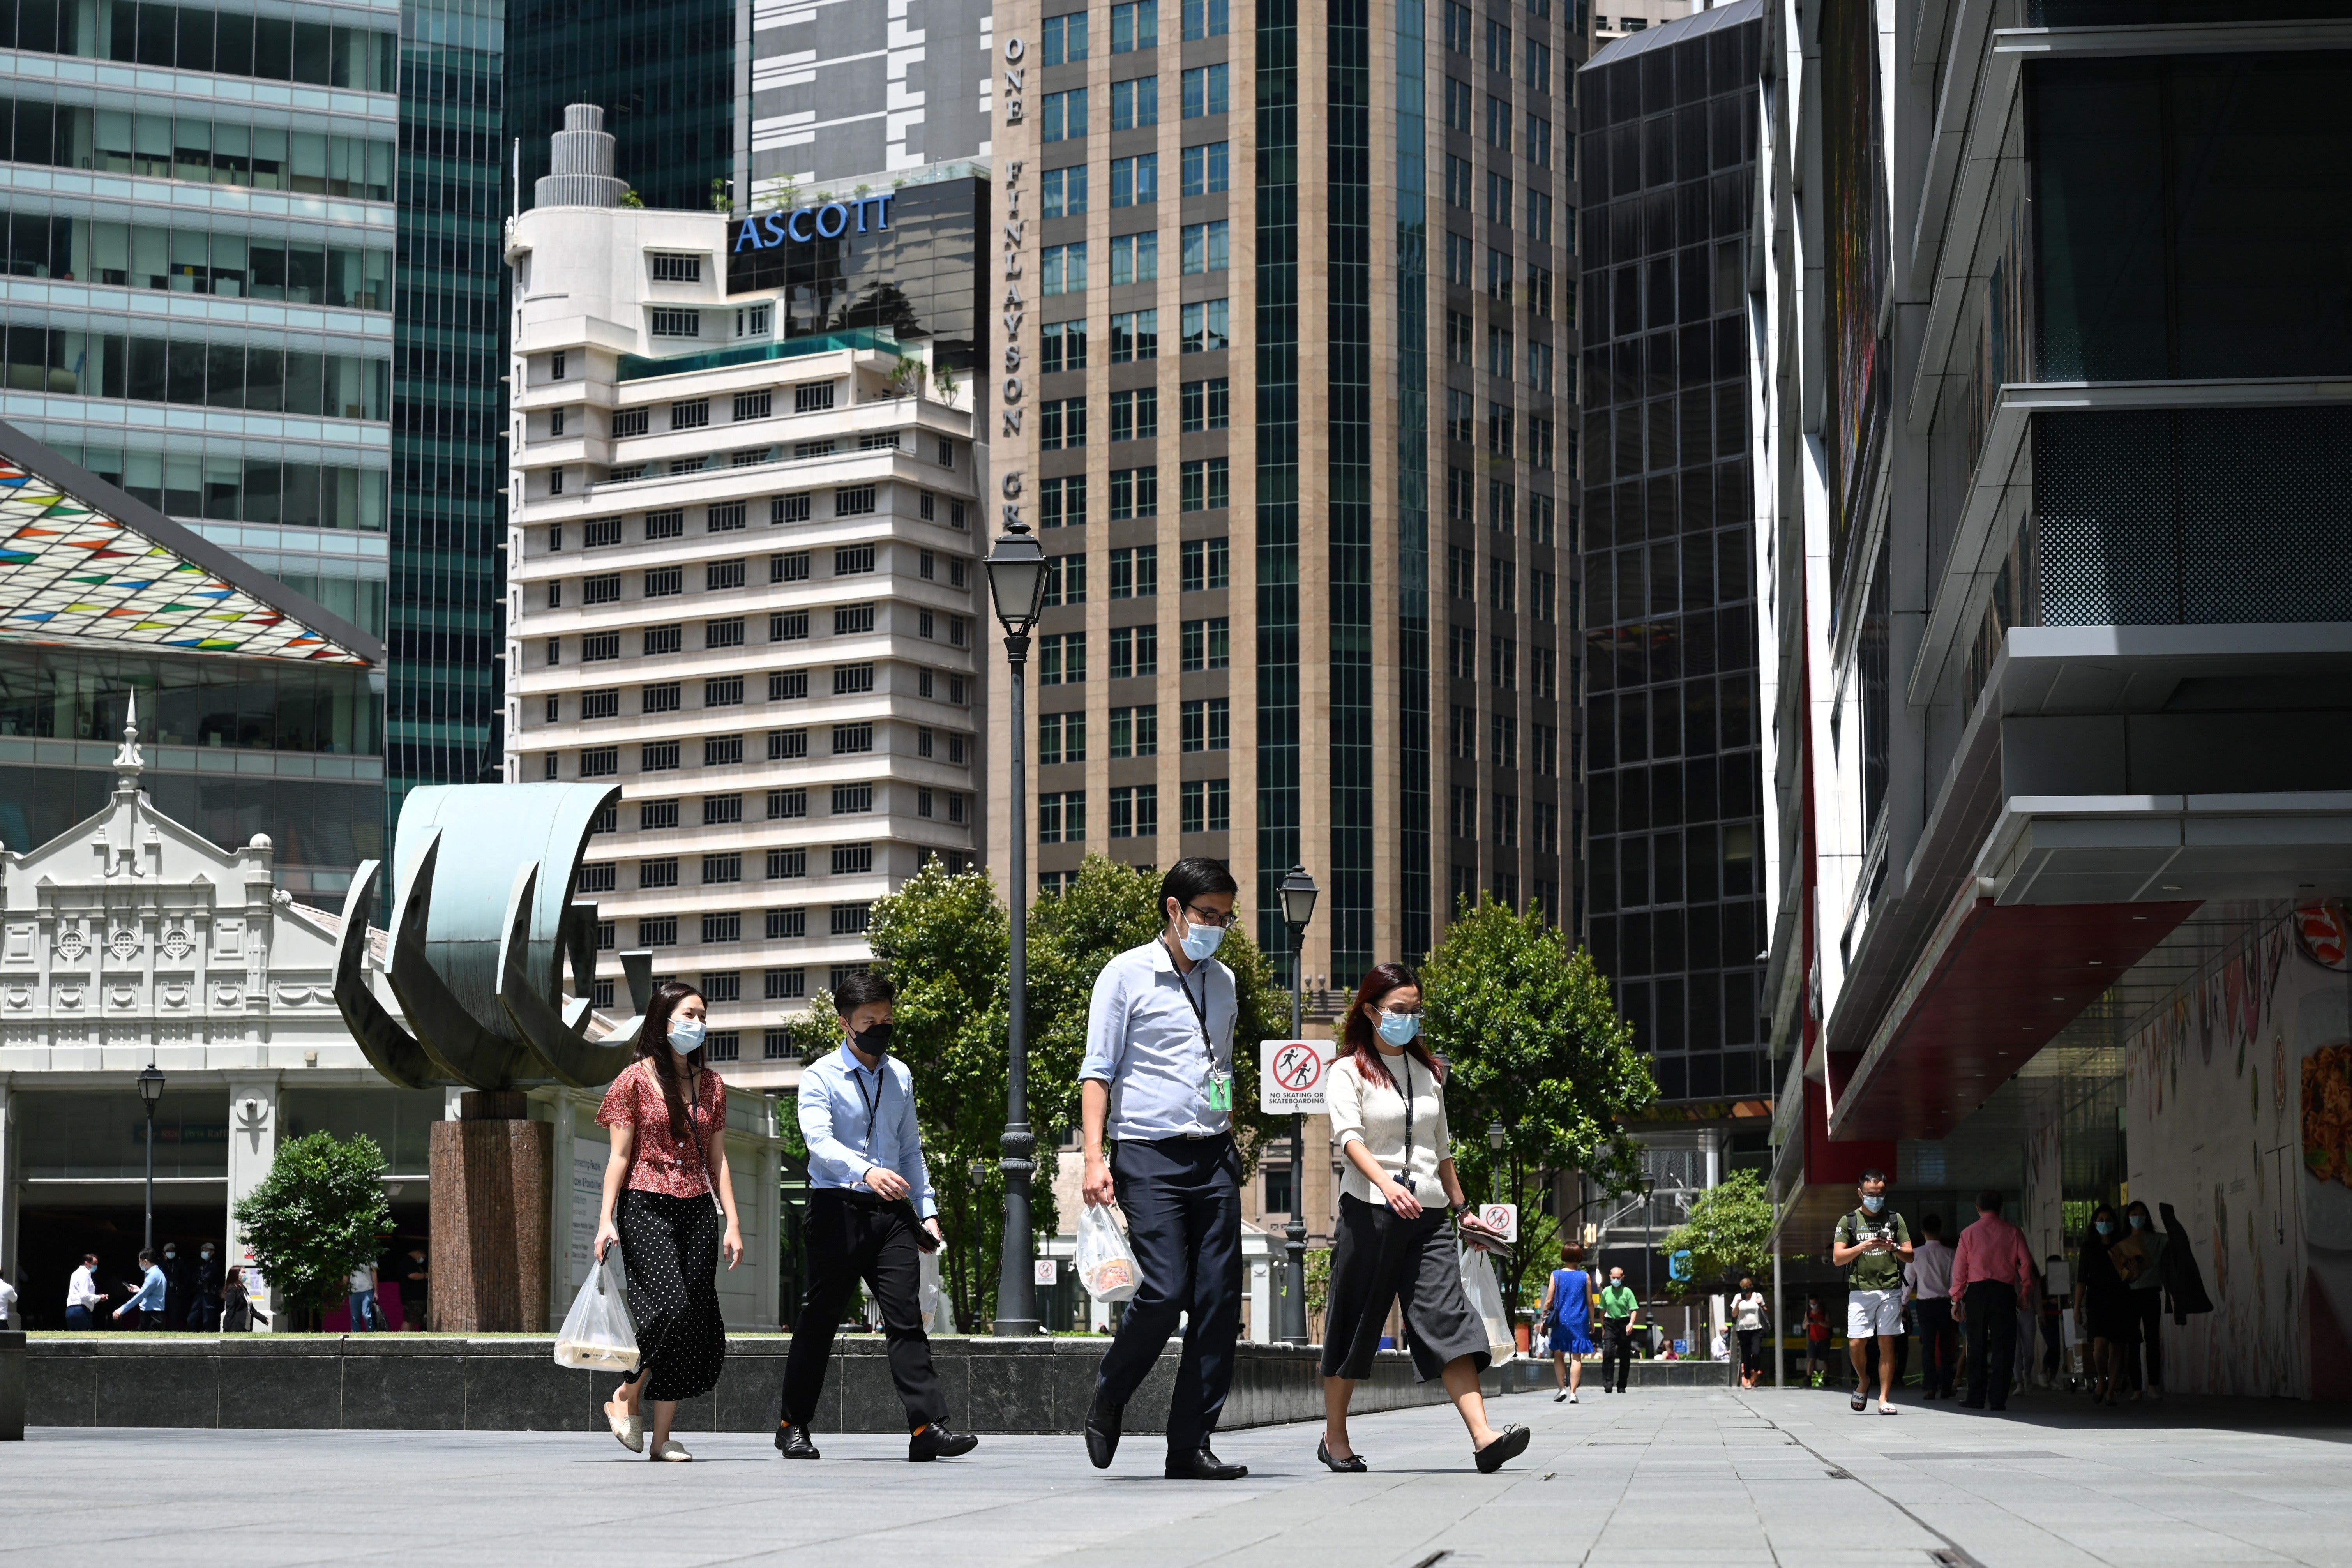 Singapore's Covid situation could start improving in a matter of weeks, professor says